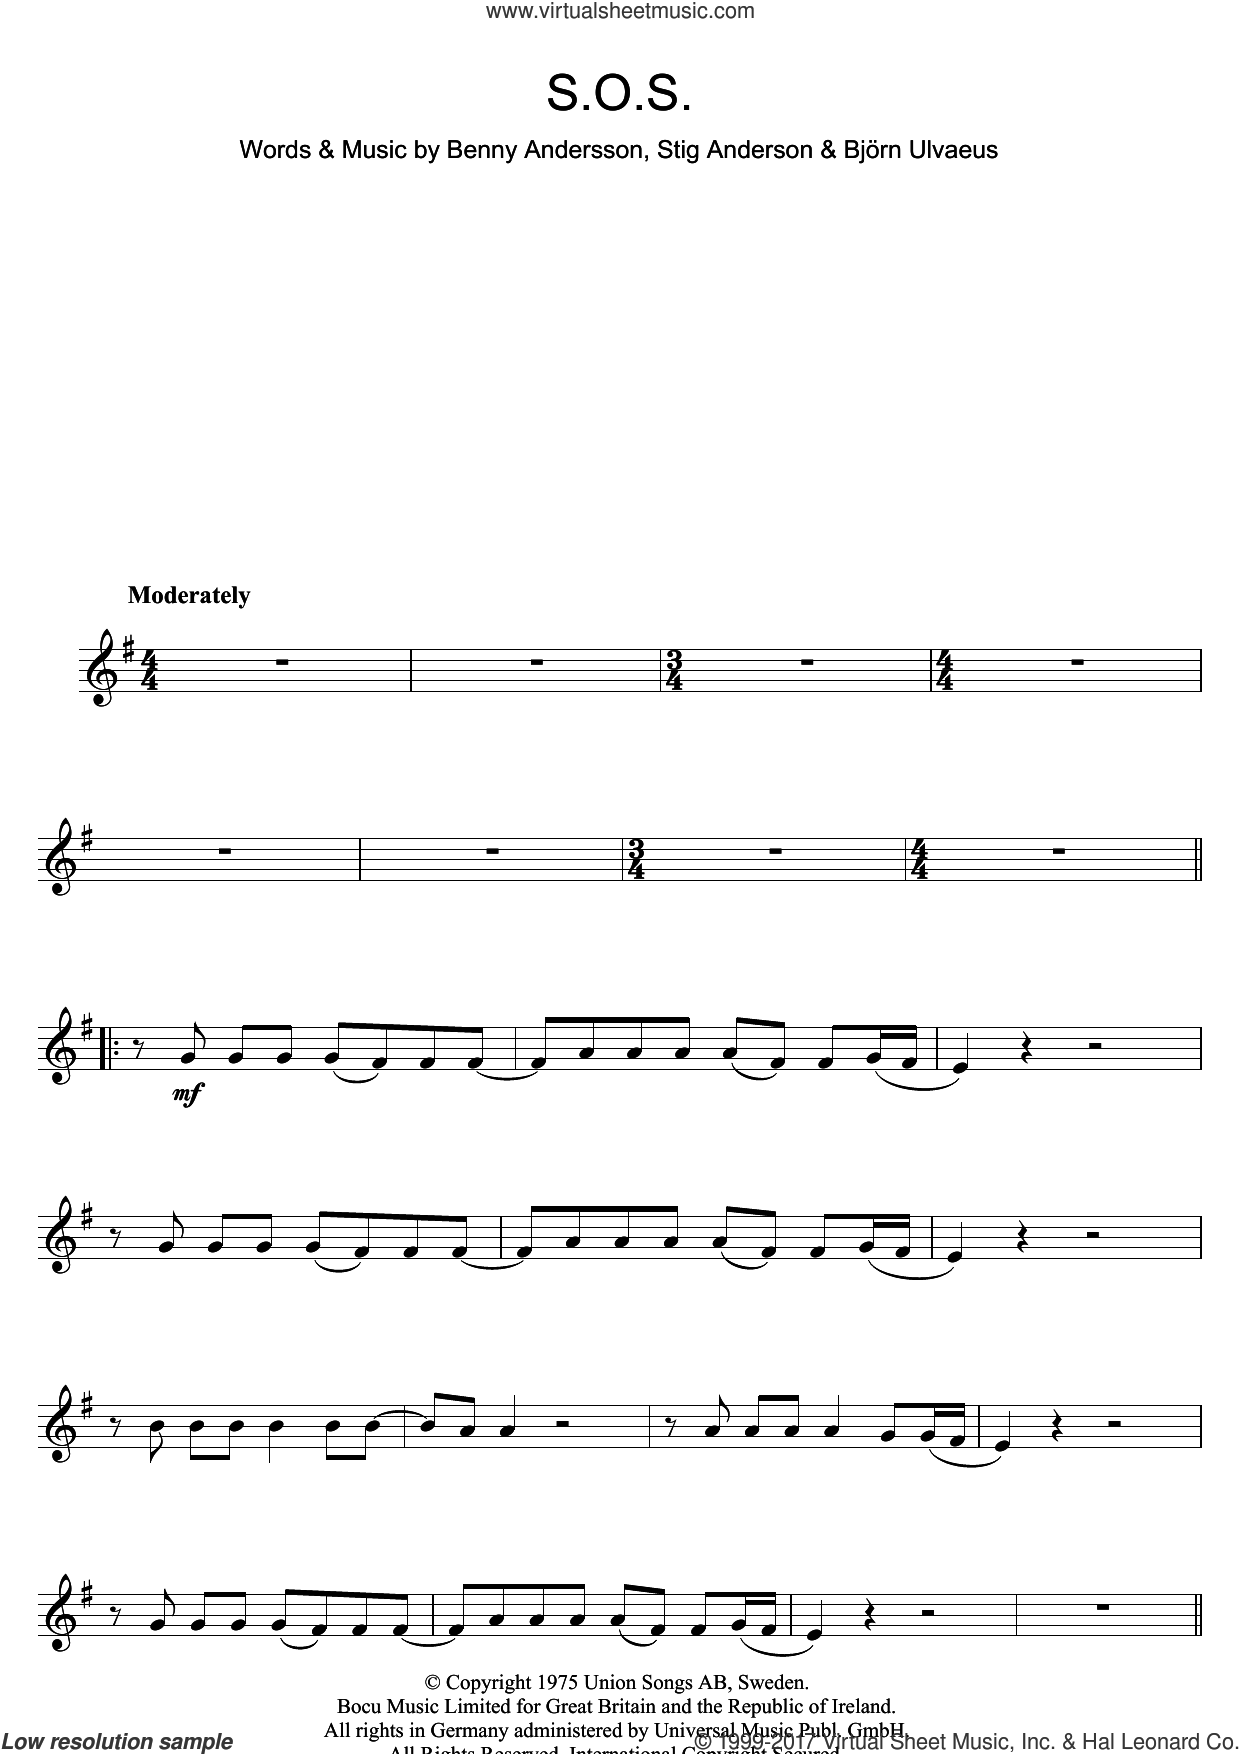 S.O.S. sheet music for clarinet solo by ABBA, Benny Andersson, Bjorn Ulvaeus and Stig Anderson, intermediate skill level